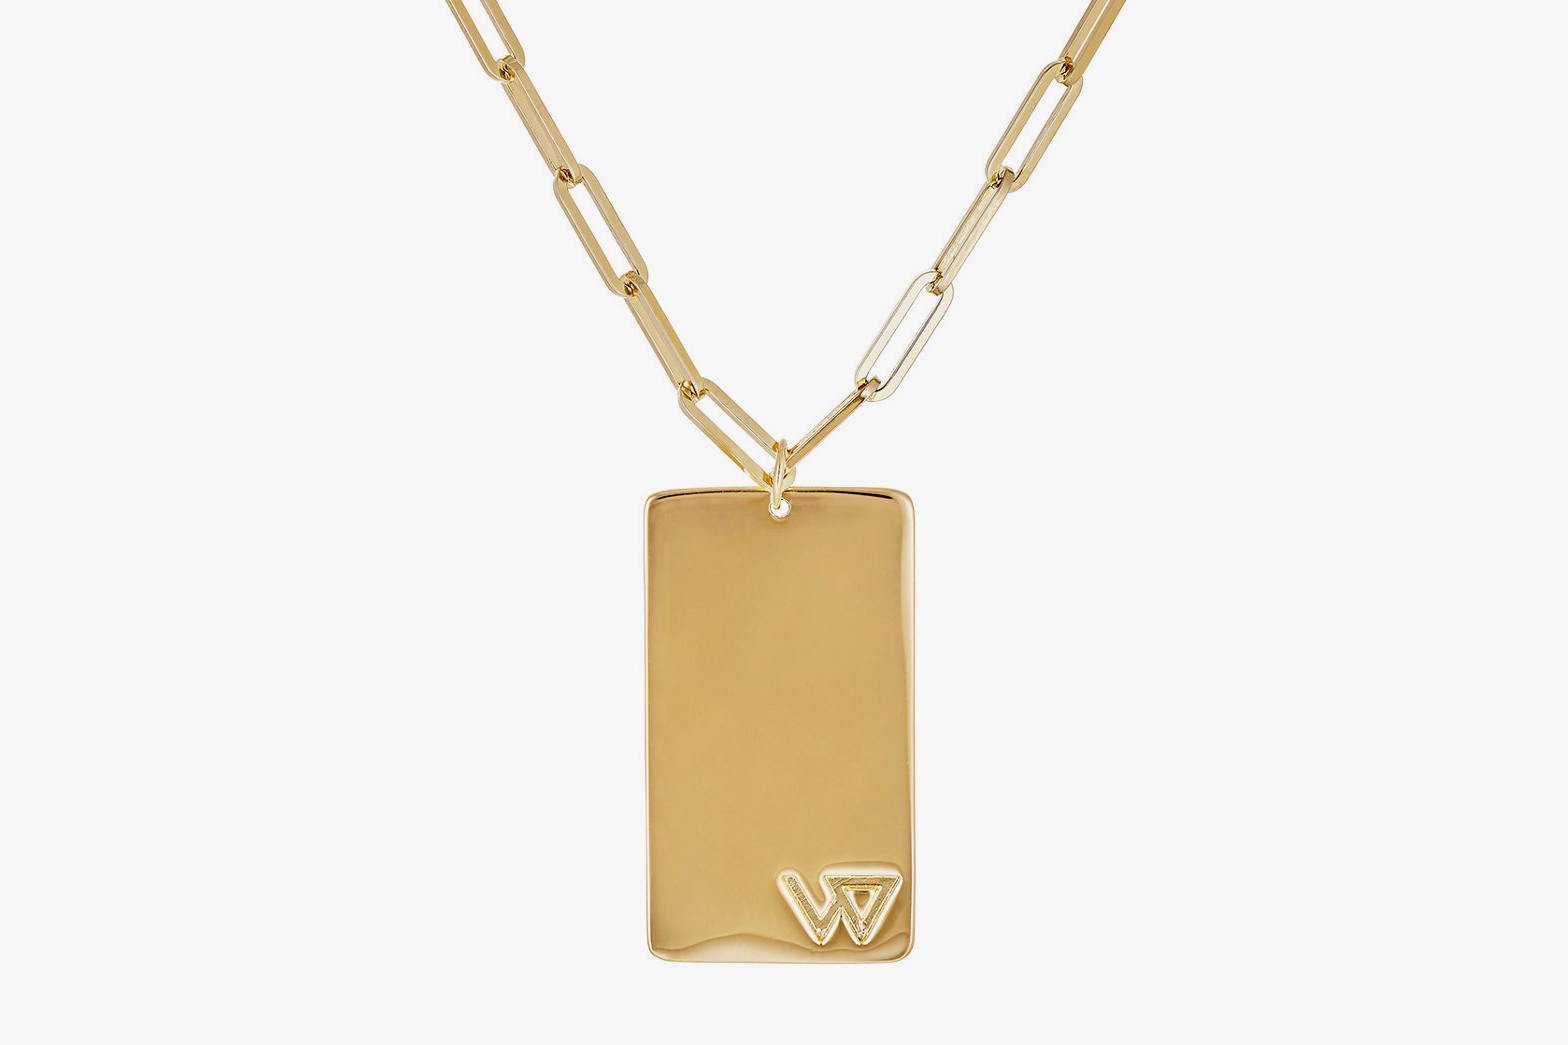 westbrook gets into jewelry with barneys new york